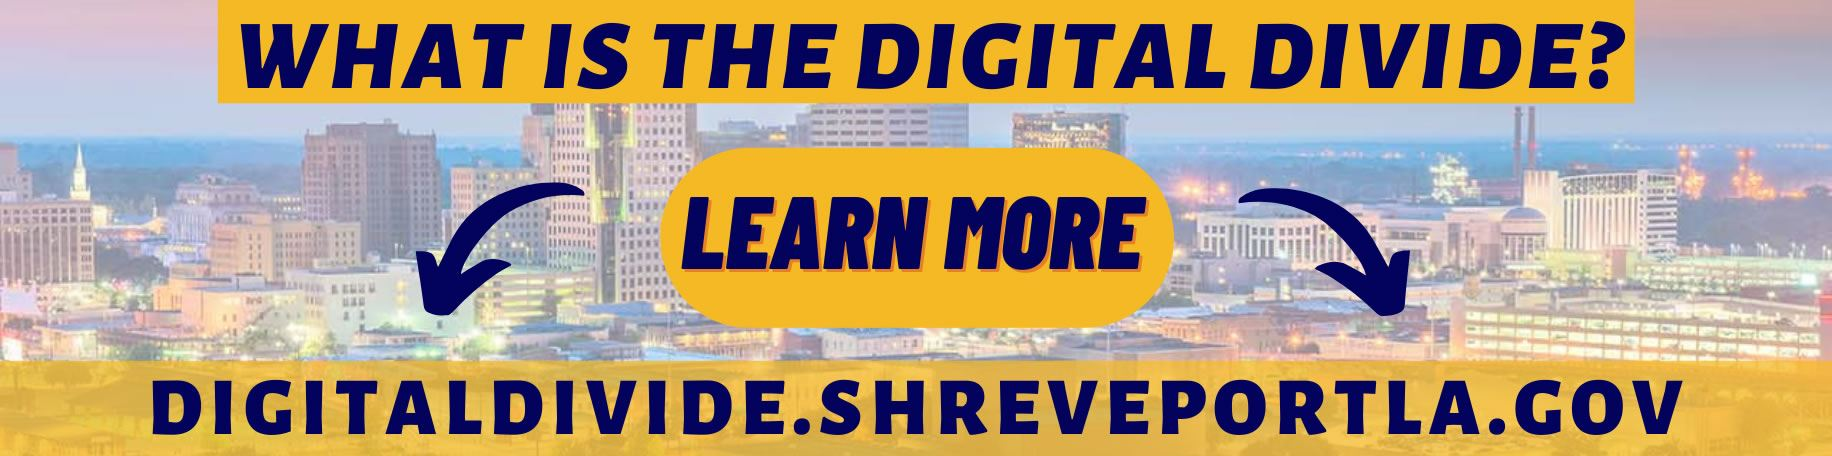 Shreveport Digital Divide